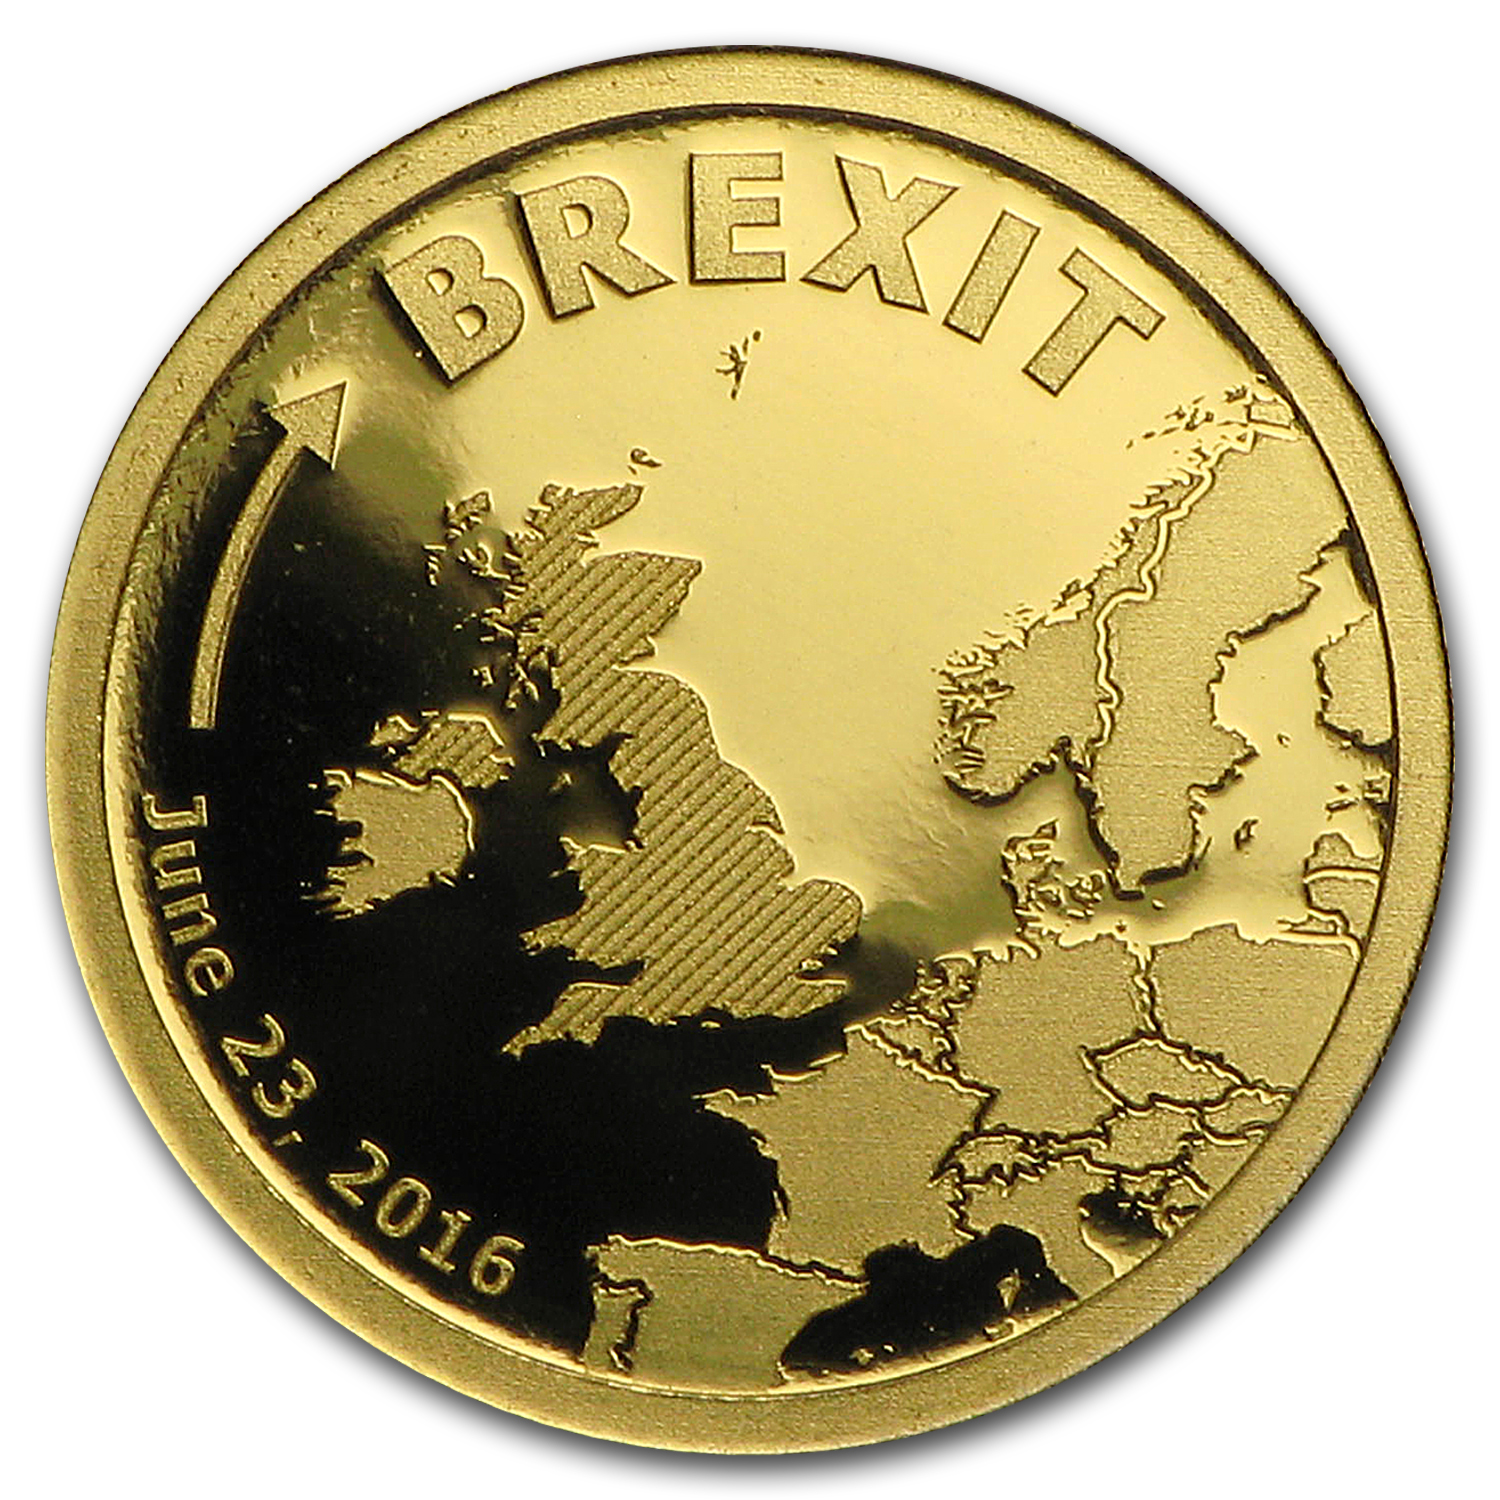 2016 Cook Islands 1/2 gram Gold Brexit Proof